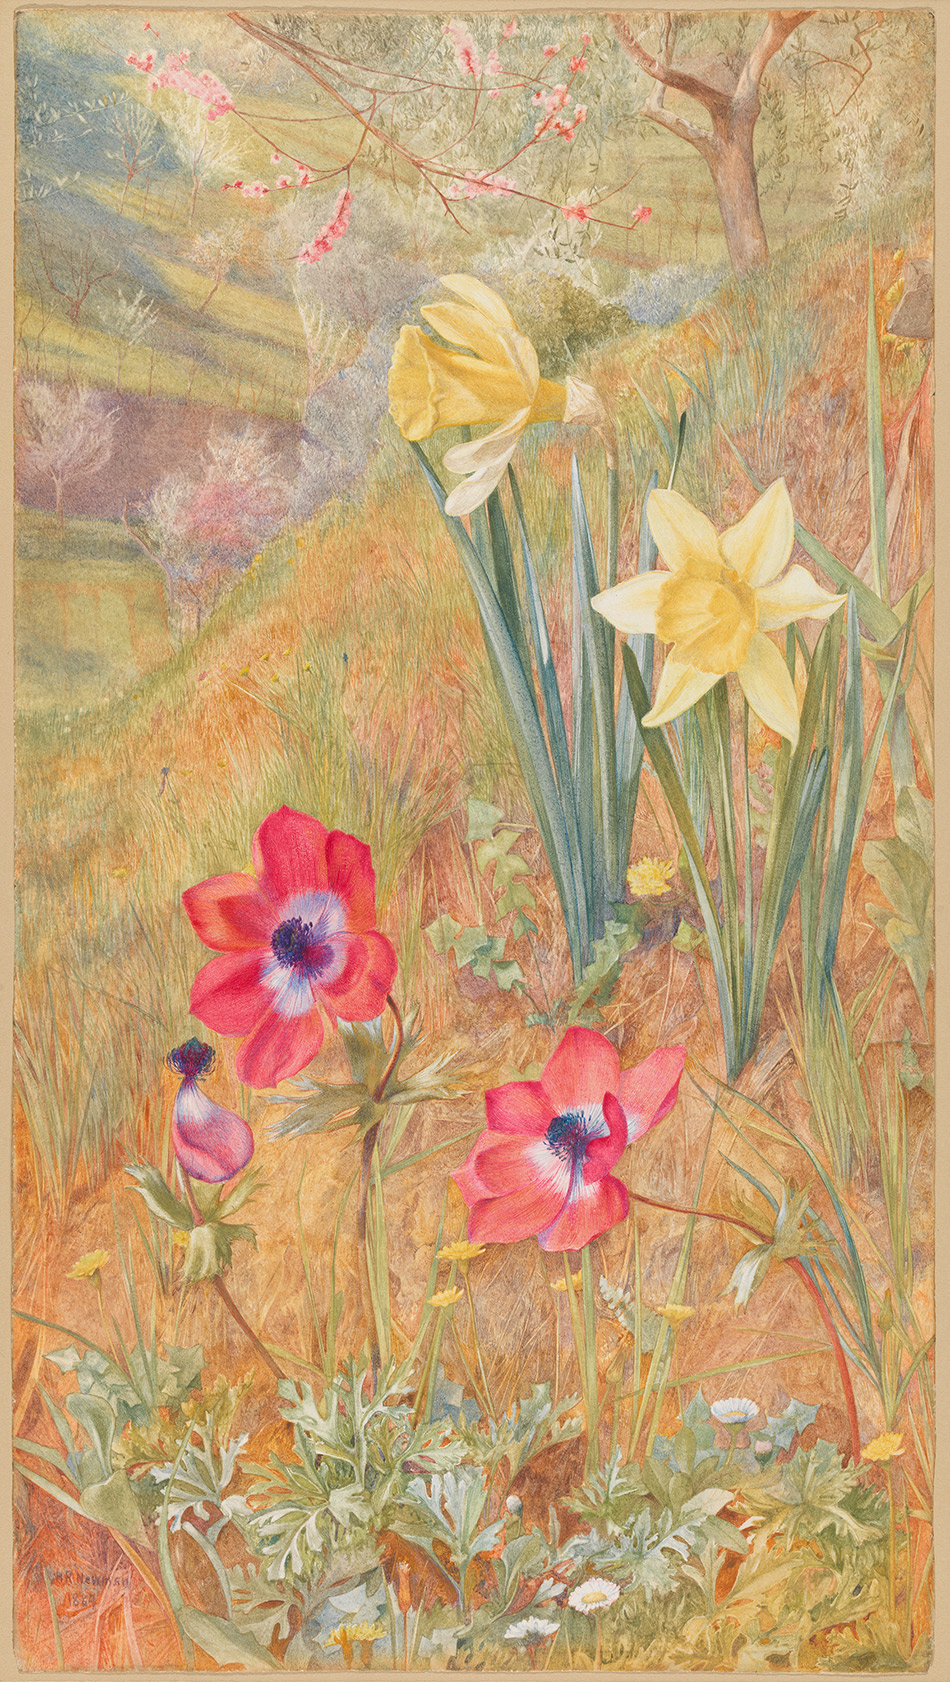 Henry-Roderick-Newman_Anemones-and-Daffodils_1884_4104-033_Virginia-Museum-of-Fine-Arts_950w